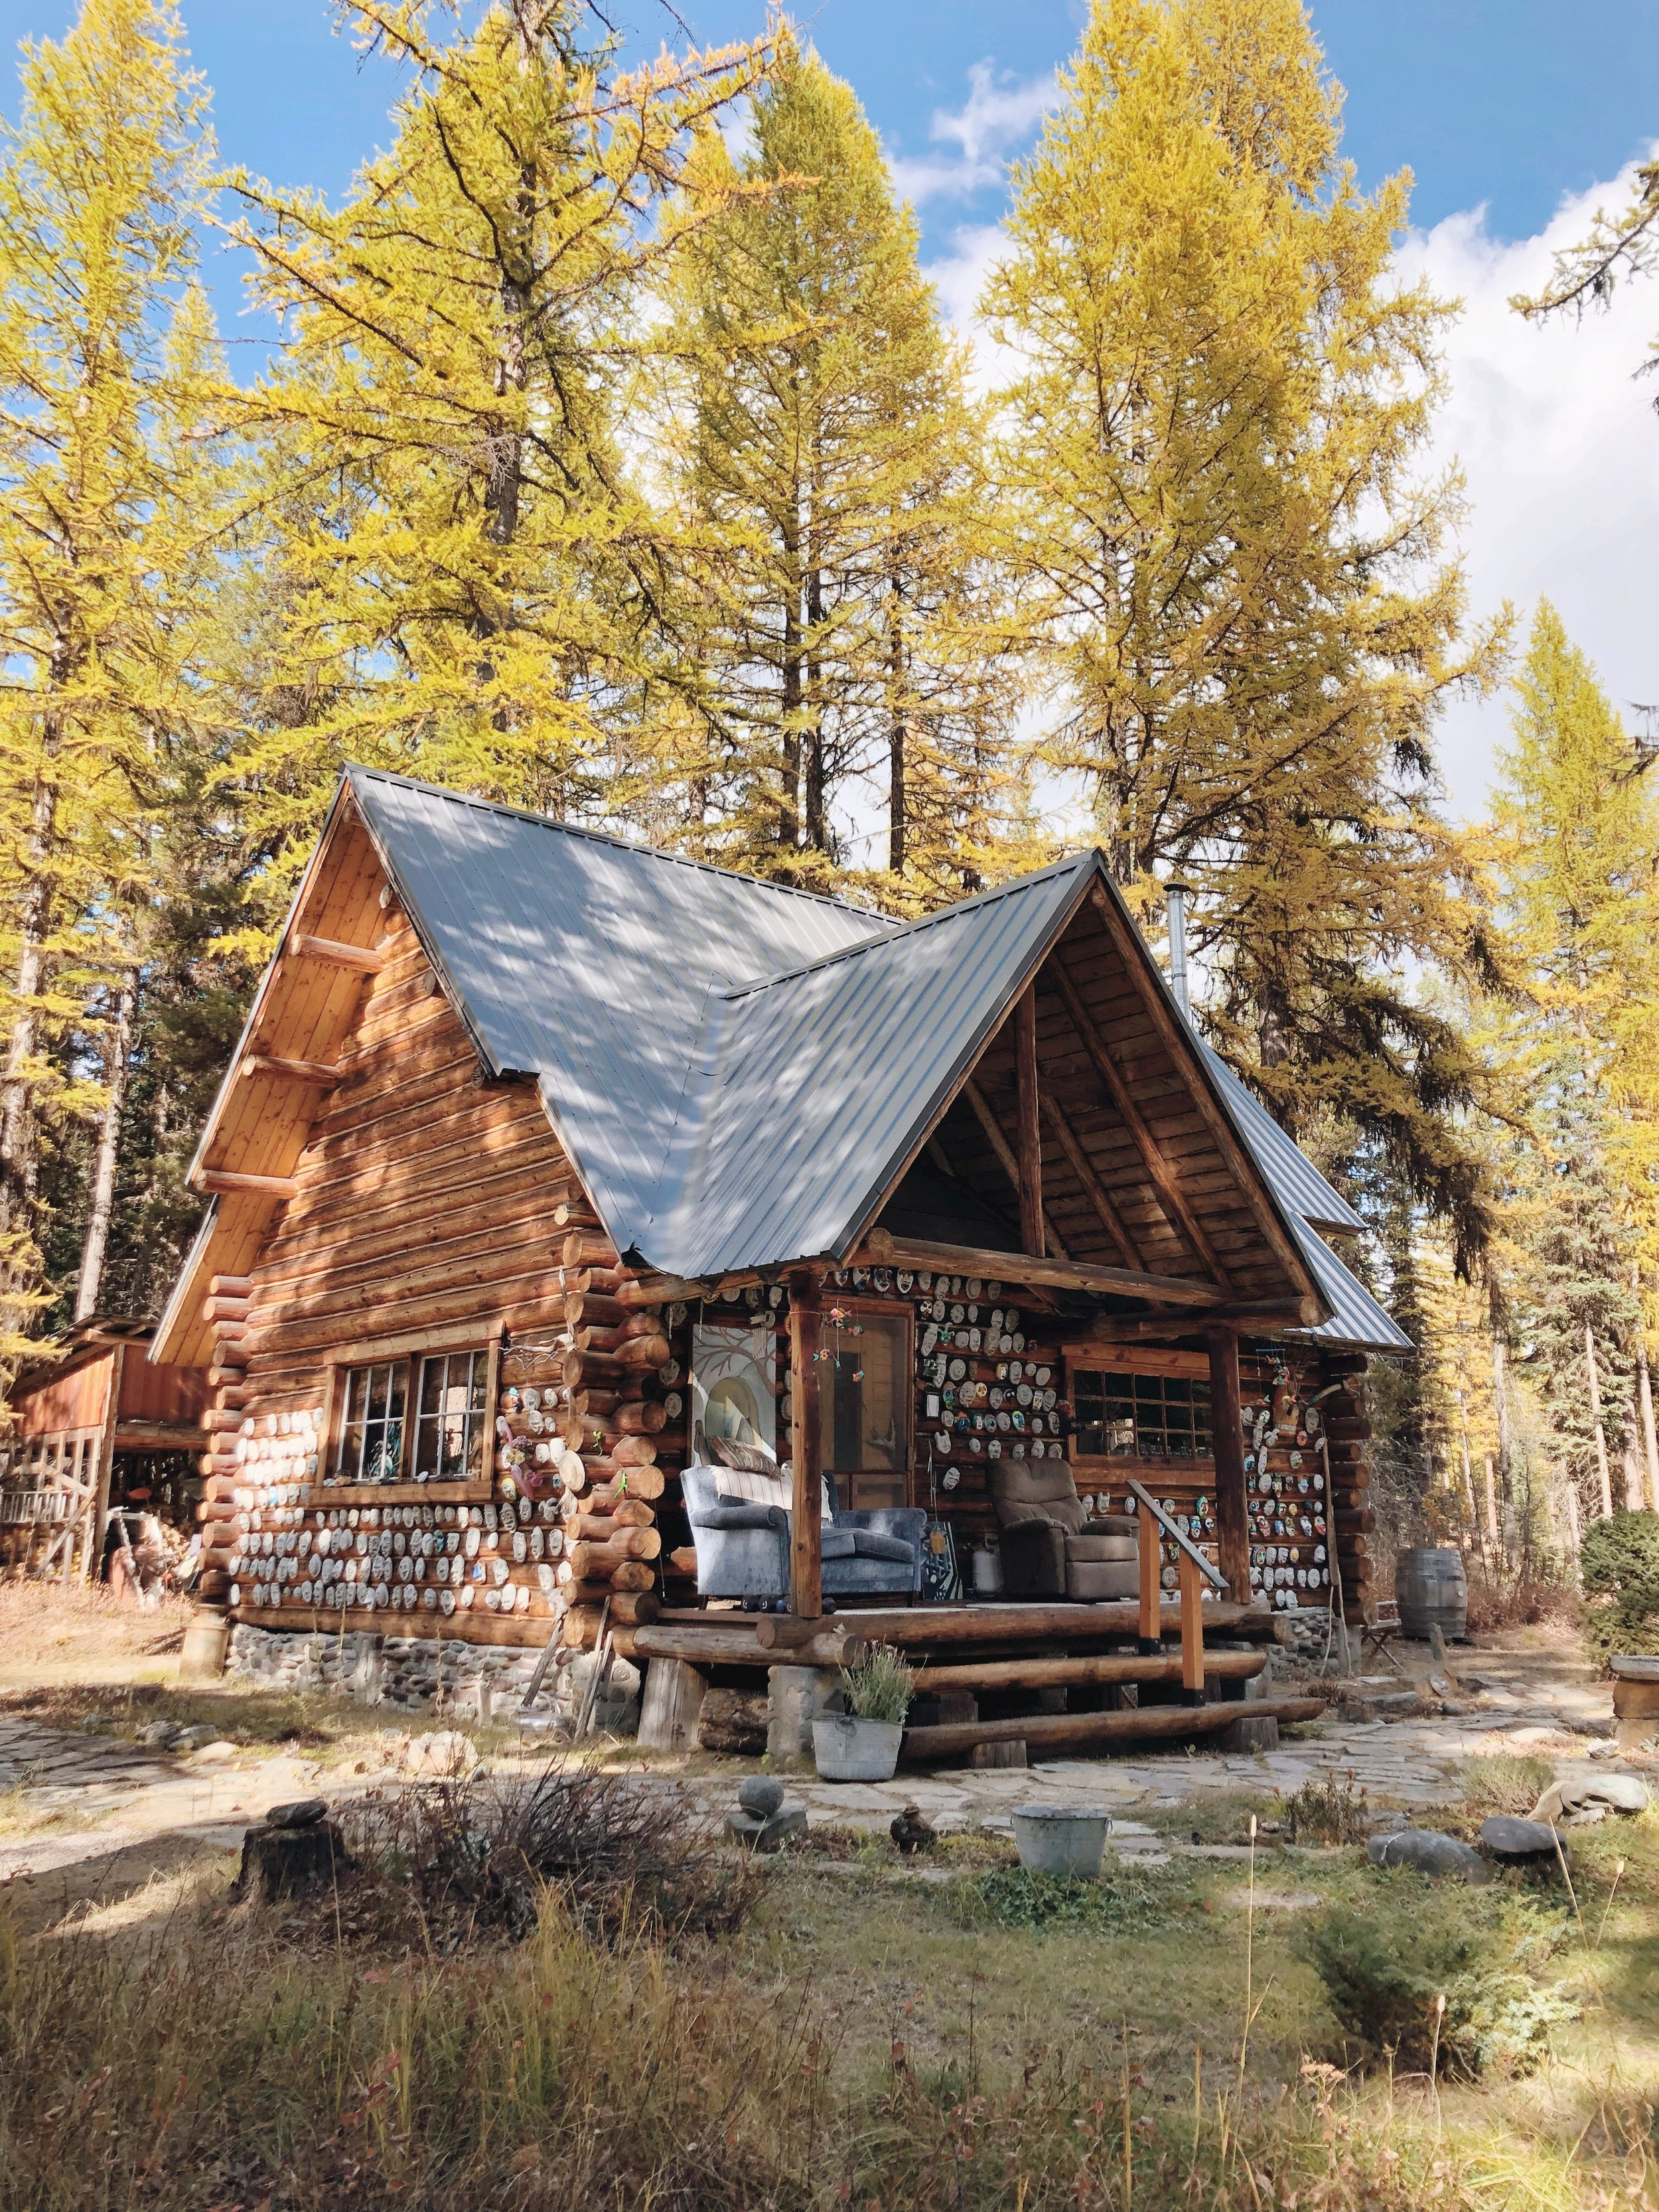 Peter's log cabin is positioned perfectly among the trees.